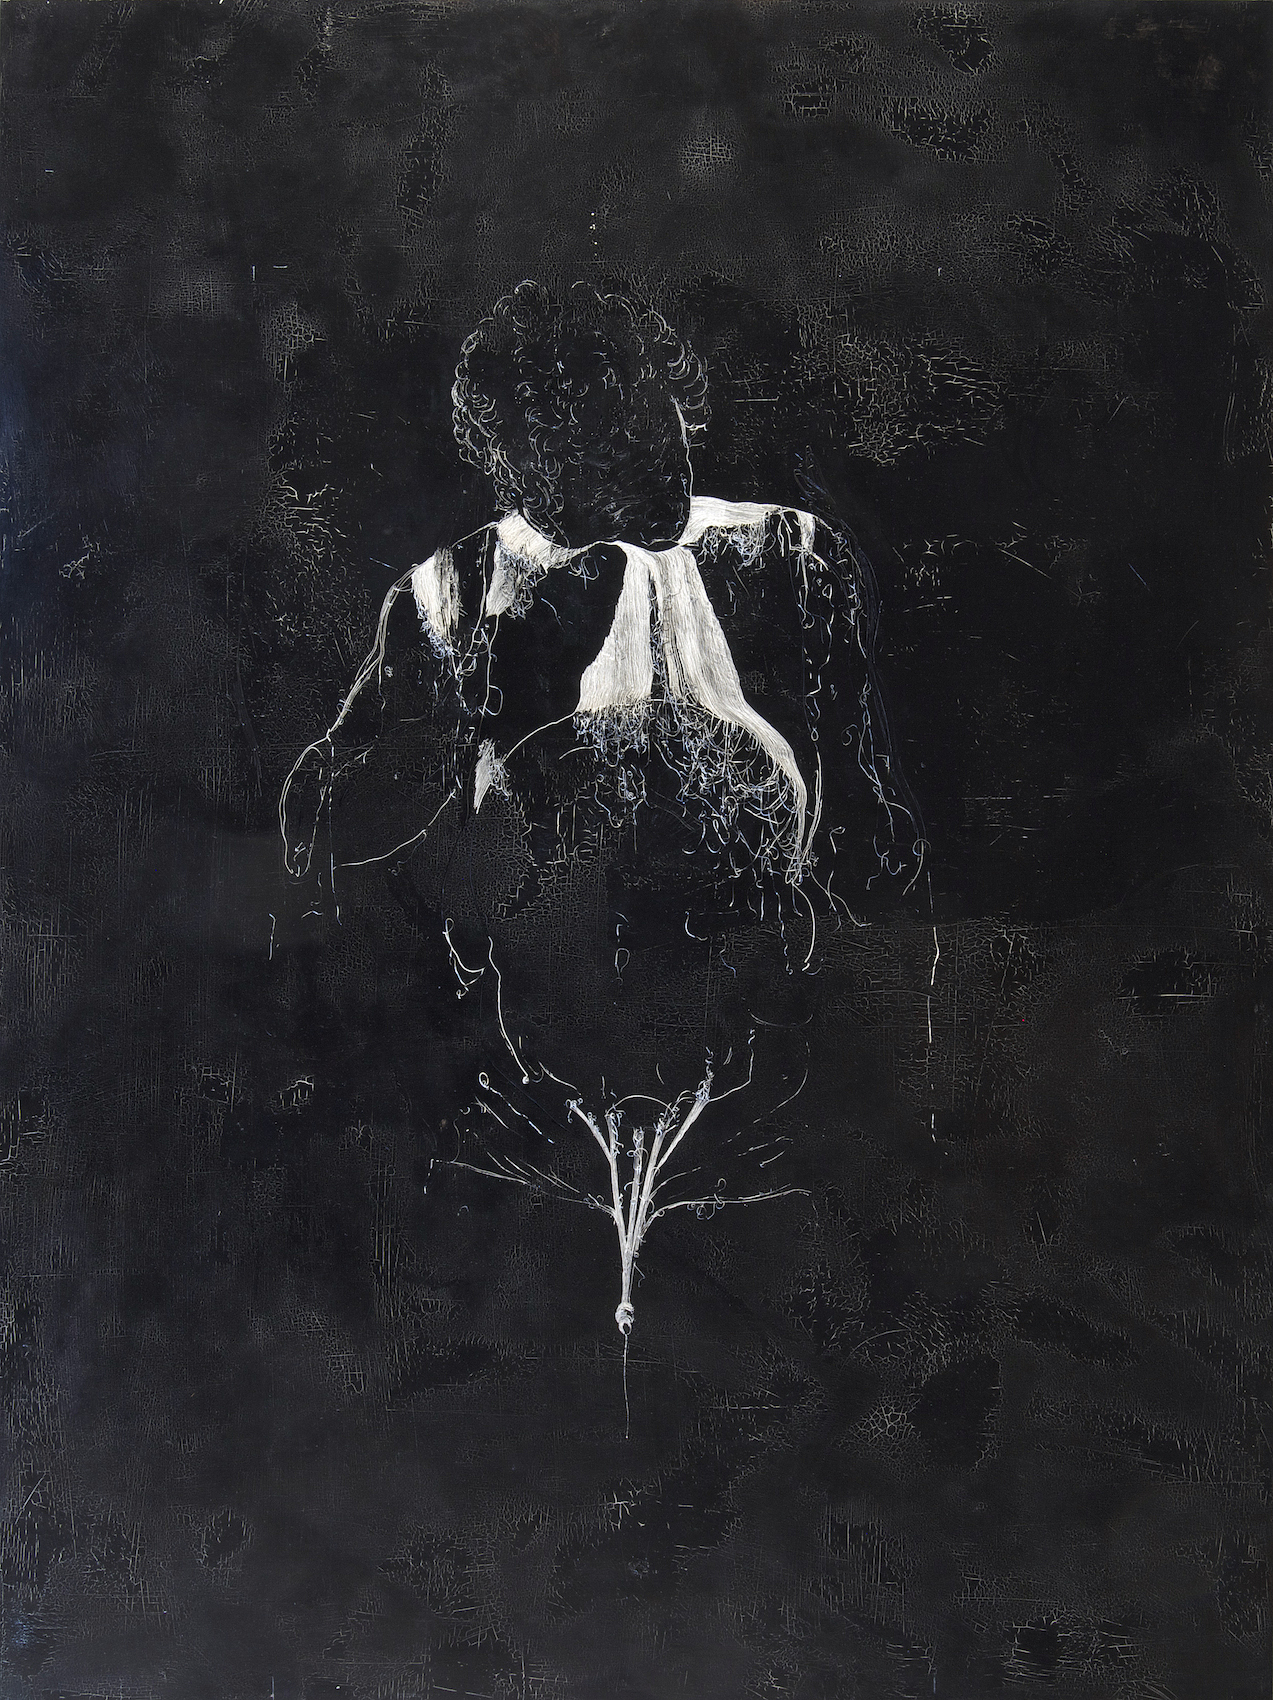 Nicola Samori, filifera, 2015, oil on wood, 200x150cm, courtesy of the artist and Rosenfeld Porcini.